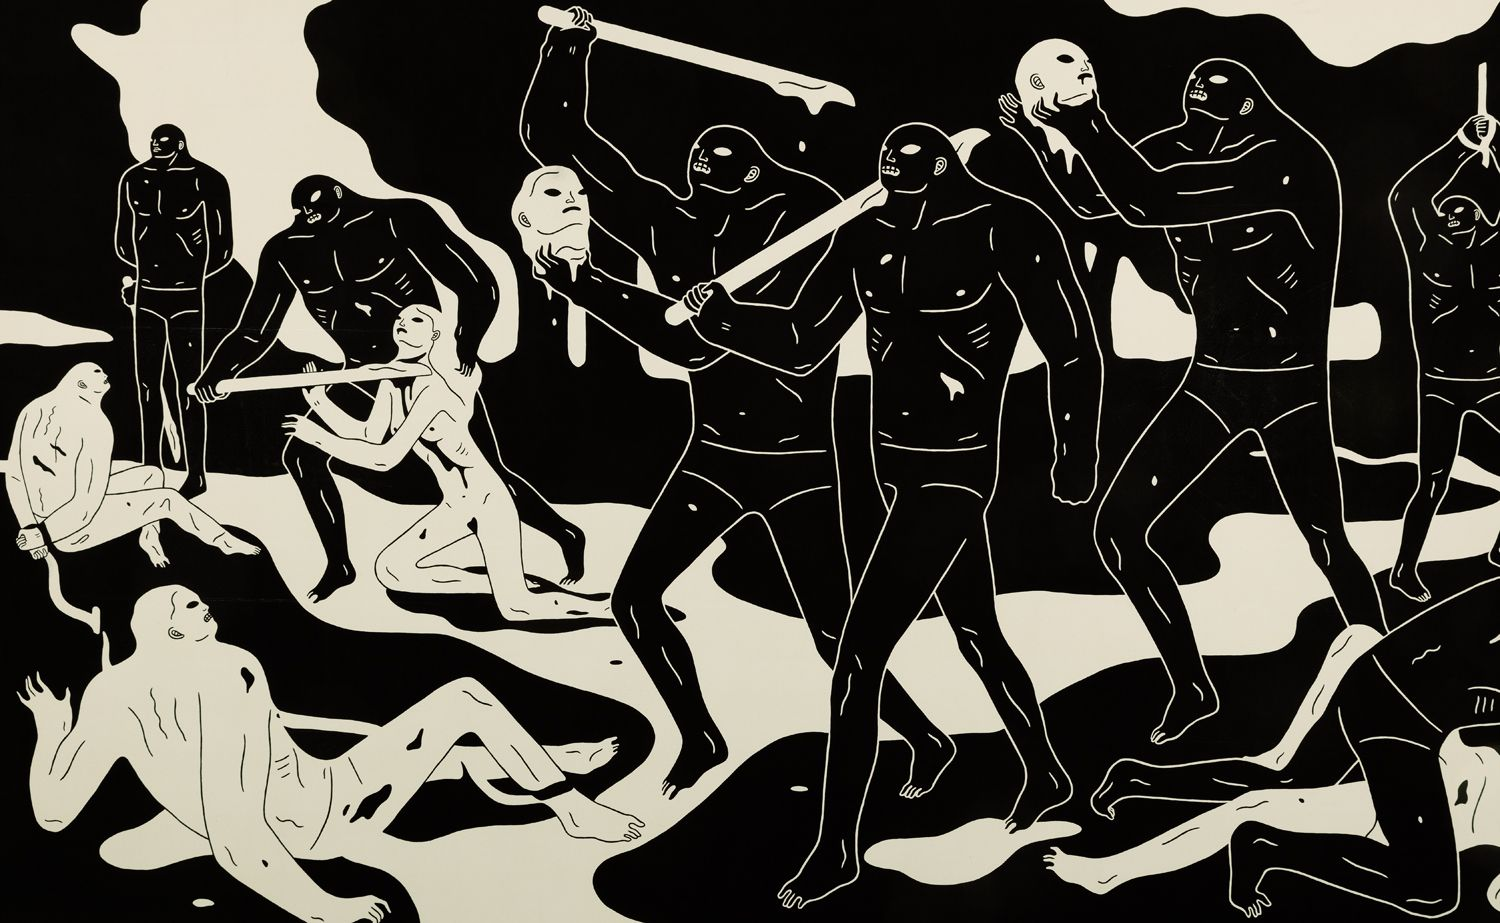 Last Chance: Purity by Cleon Peterson